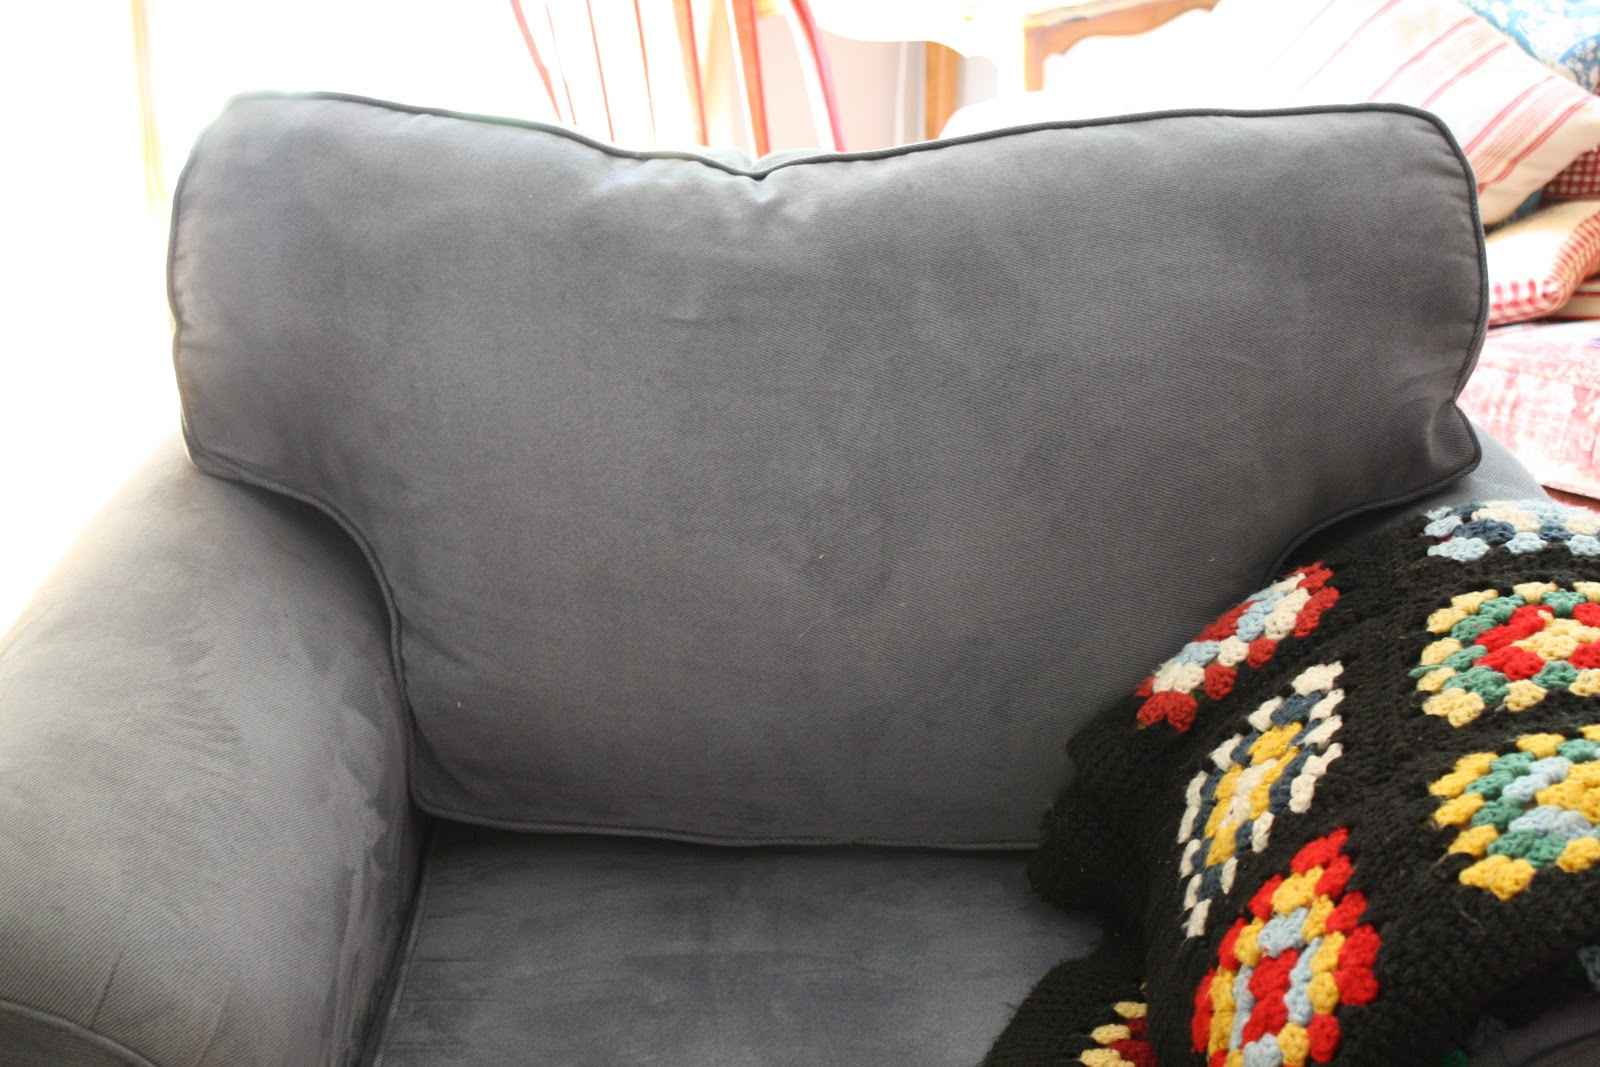 refilling sofa cushions 2 seater white leather bed sunny simple life how to refill couch cheaply